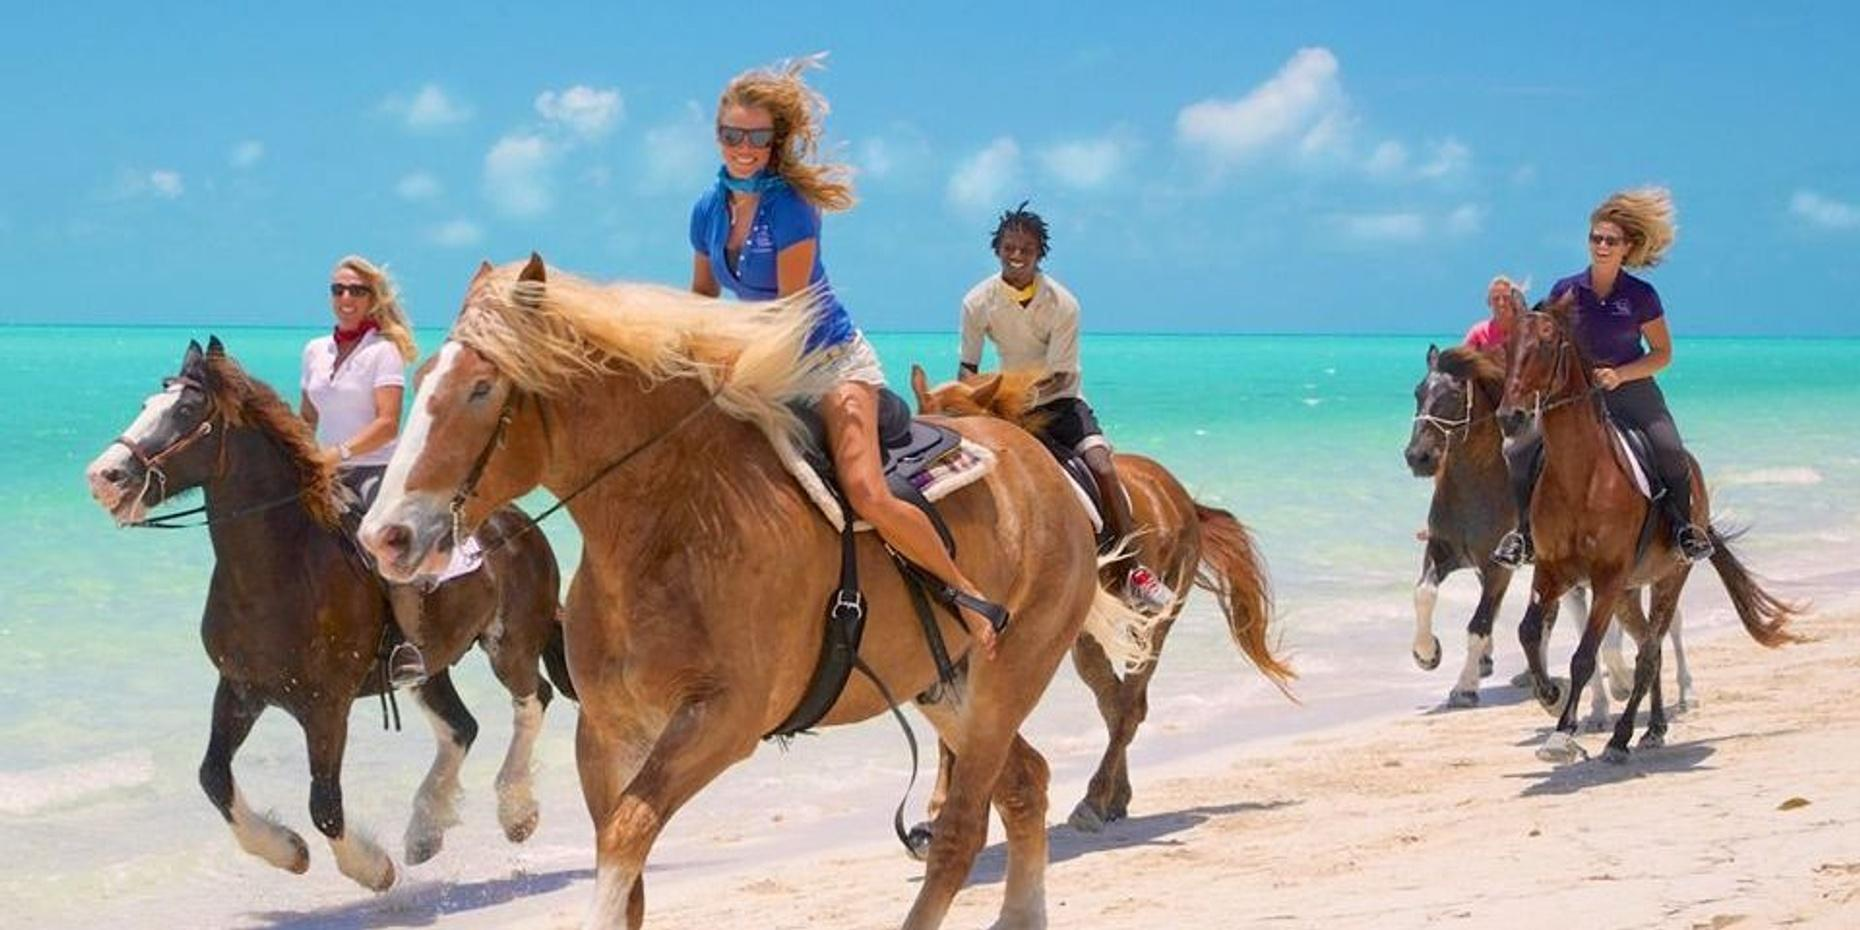 One Hour Private Horseback Ride on the Beach in Turks and Caicos